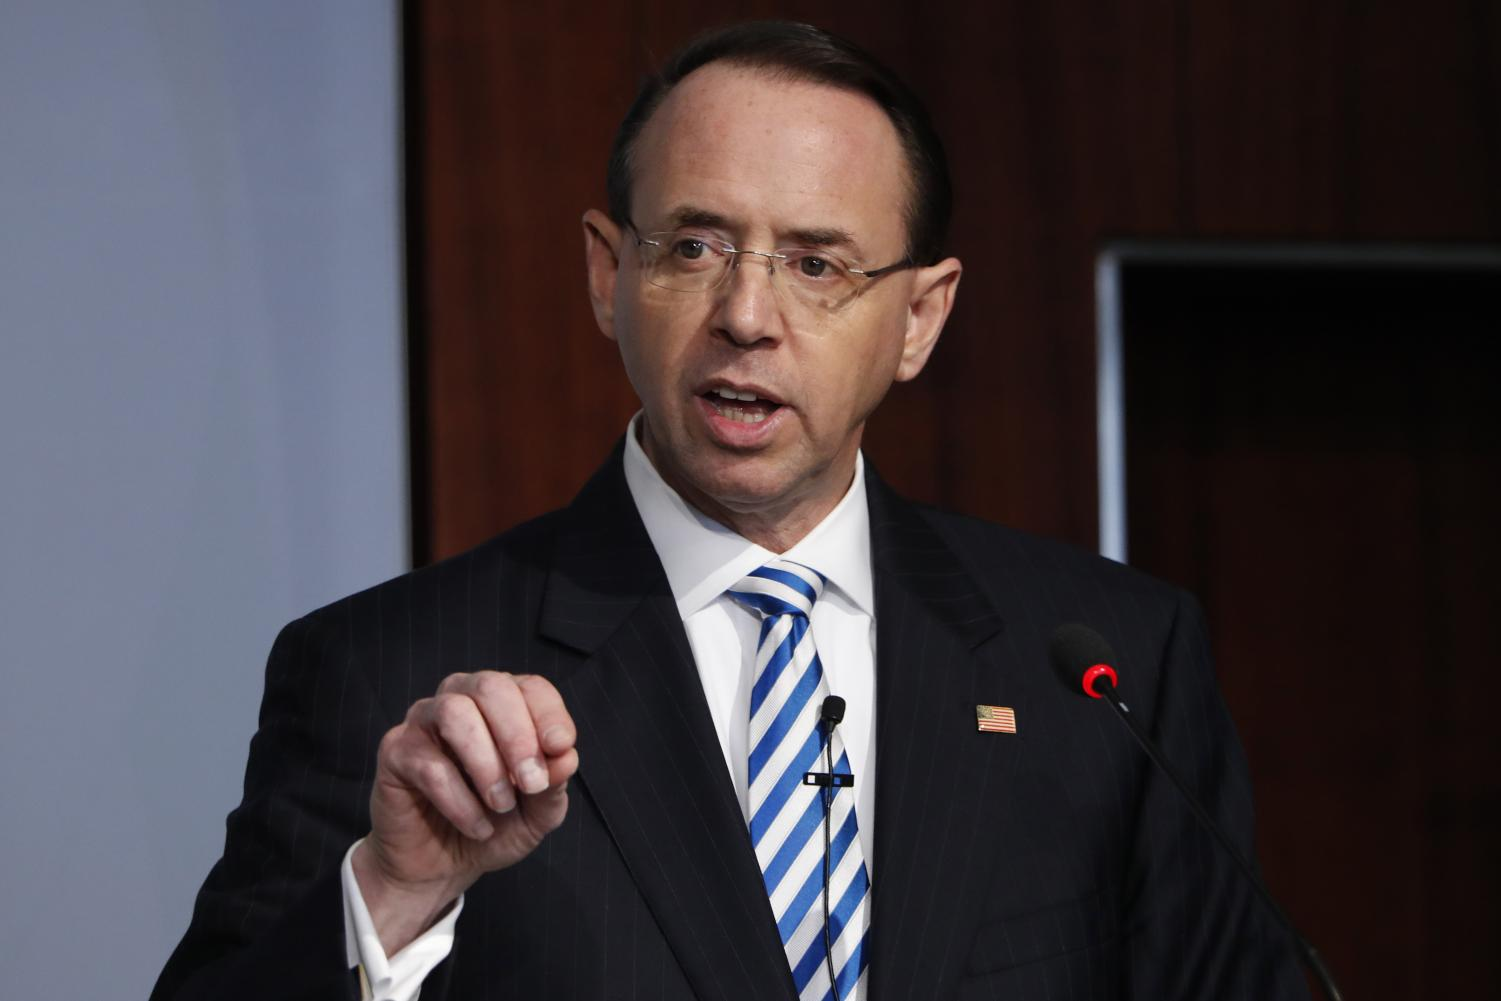 In this Feb. 25, 2019, file photo, Deputy Attorney General Rod Rosenstein speaks at a Center for Strategic and International Studies (CSIS) event on the rule of law in Washington. Rosenstein has submitted a letter of resignation to President Donald Trump. It's effective May 11.